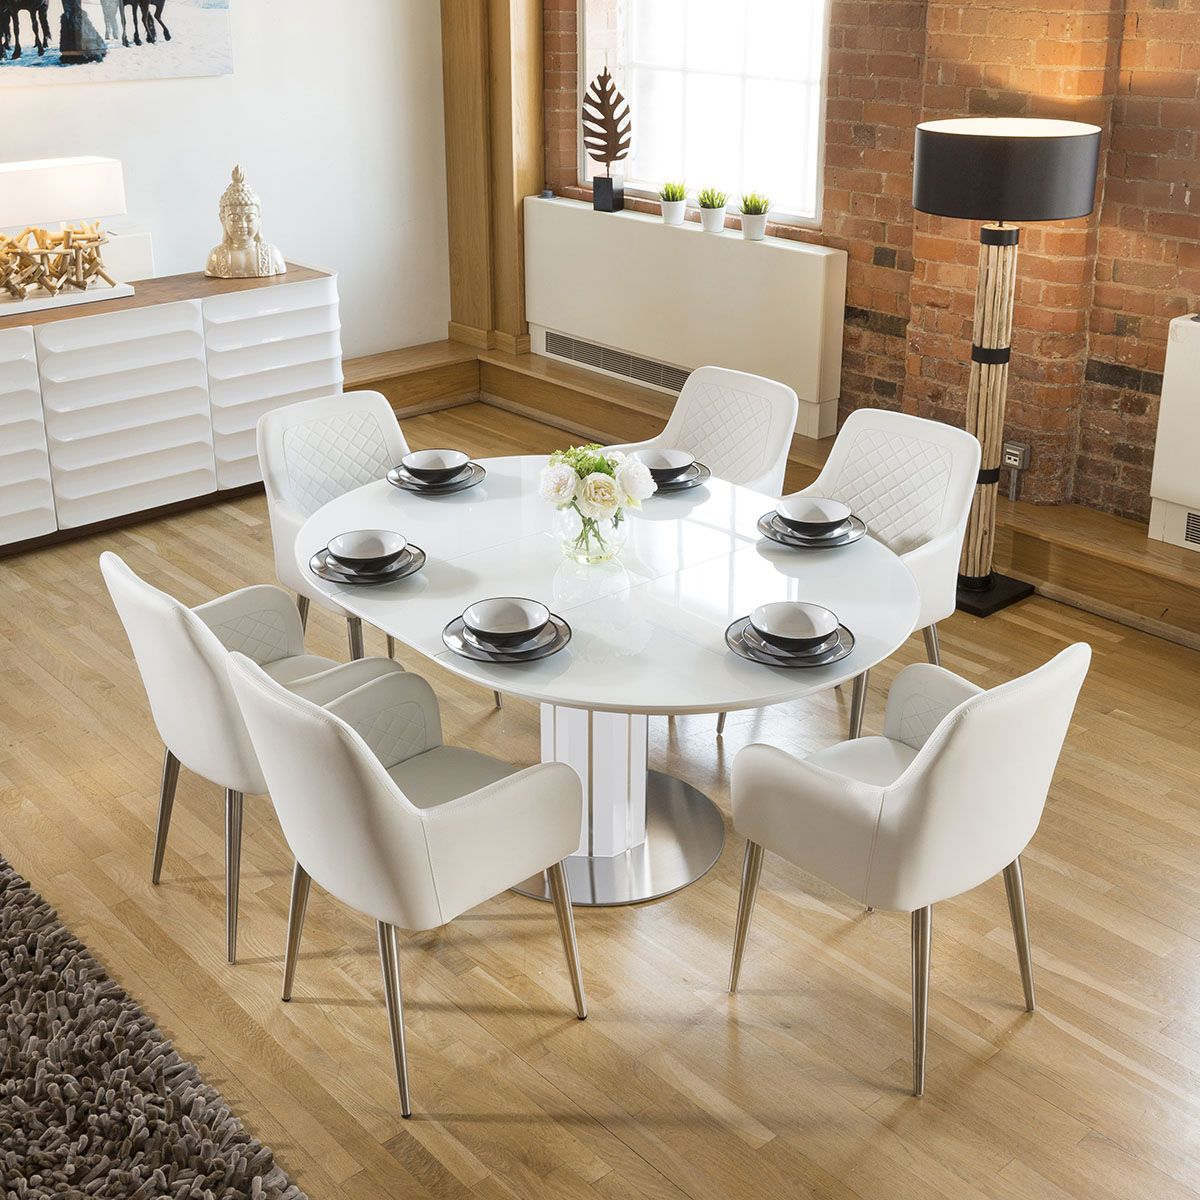 Modern Extending Dining Set Oval / Round Glass Table 6 ...